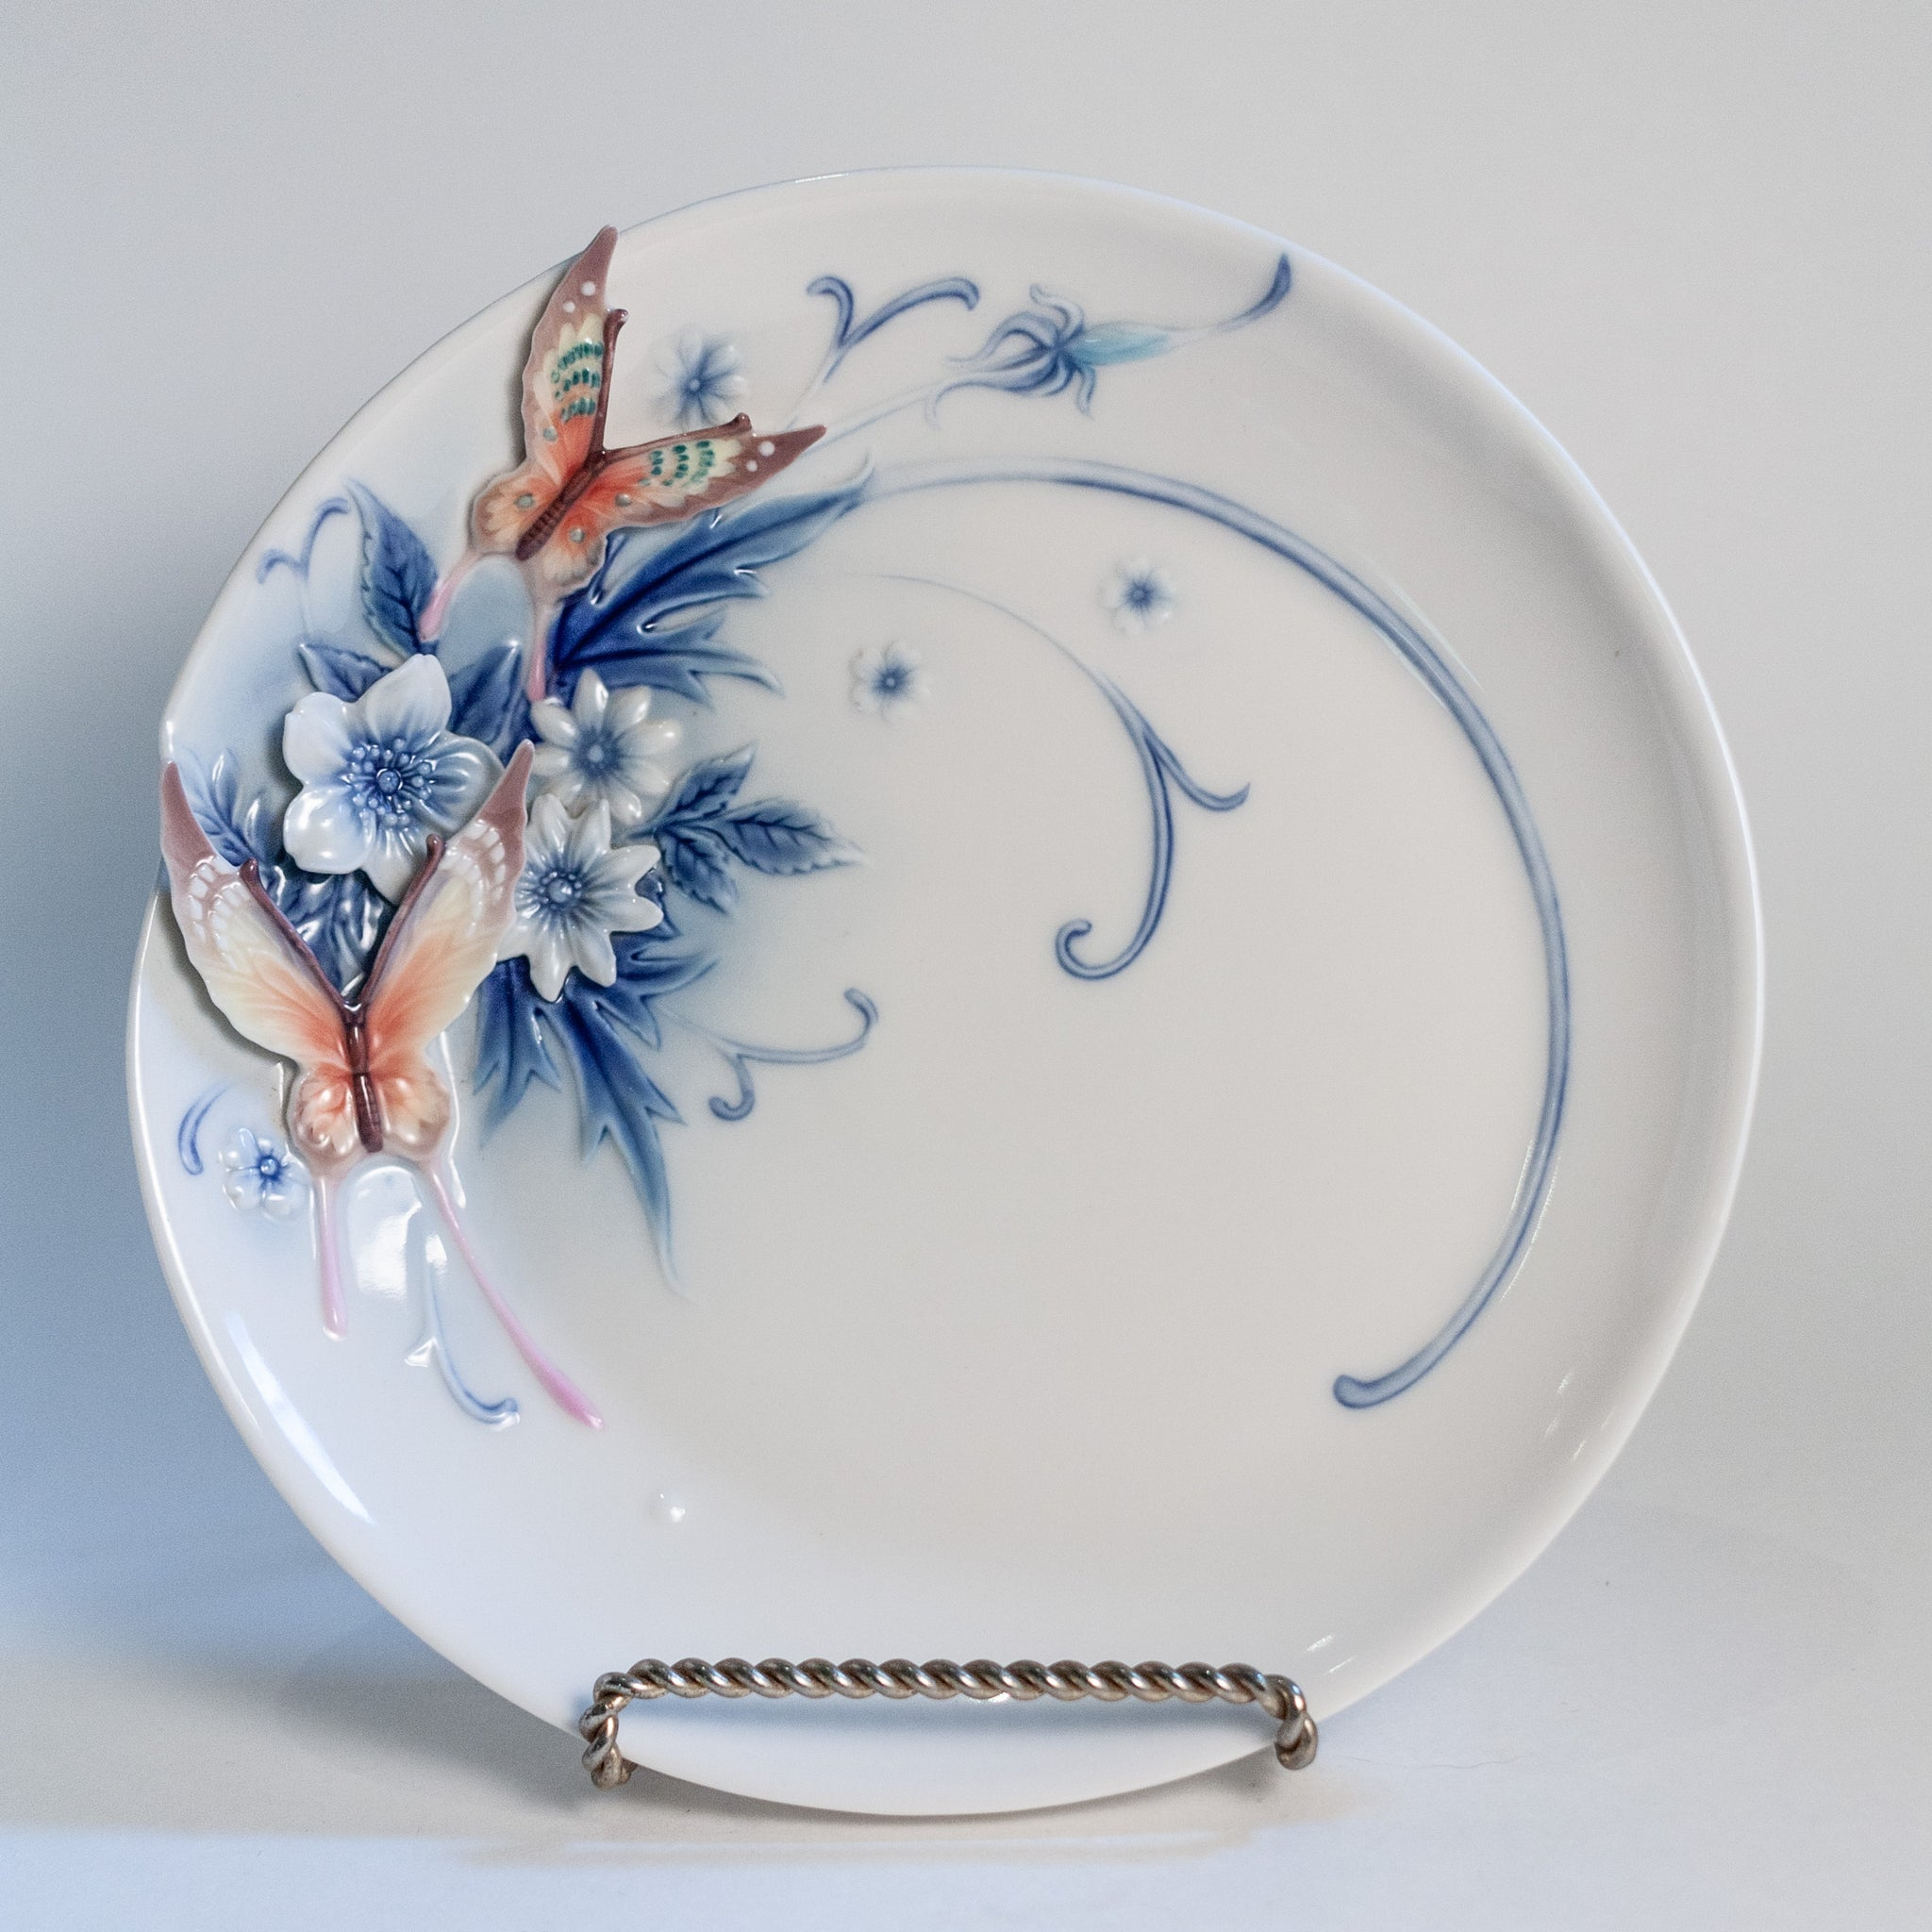 Franz Sculpted Porcelain Plate